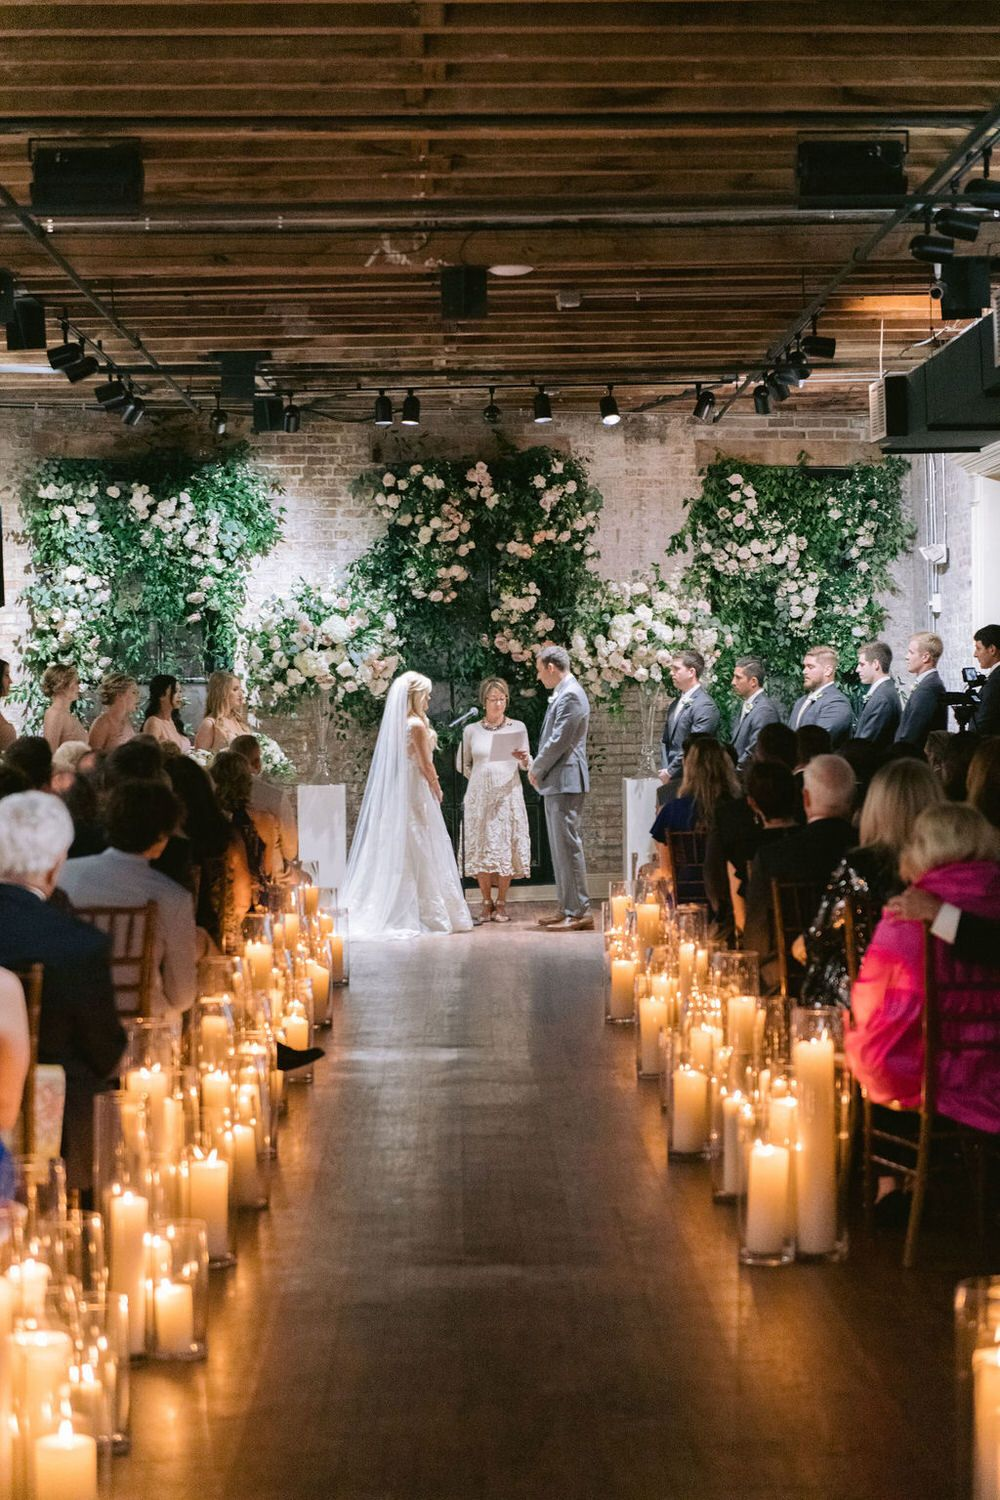 Romantic New Orleans Wedding at The Chicory ⋆ Ruffled